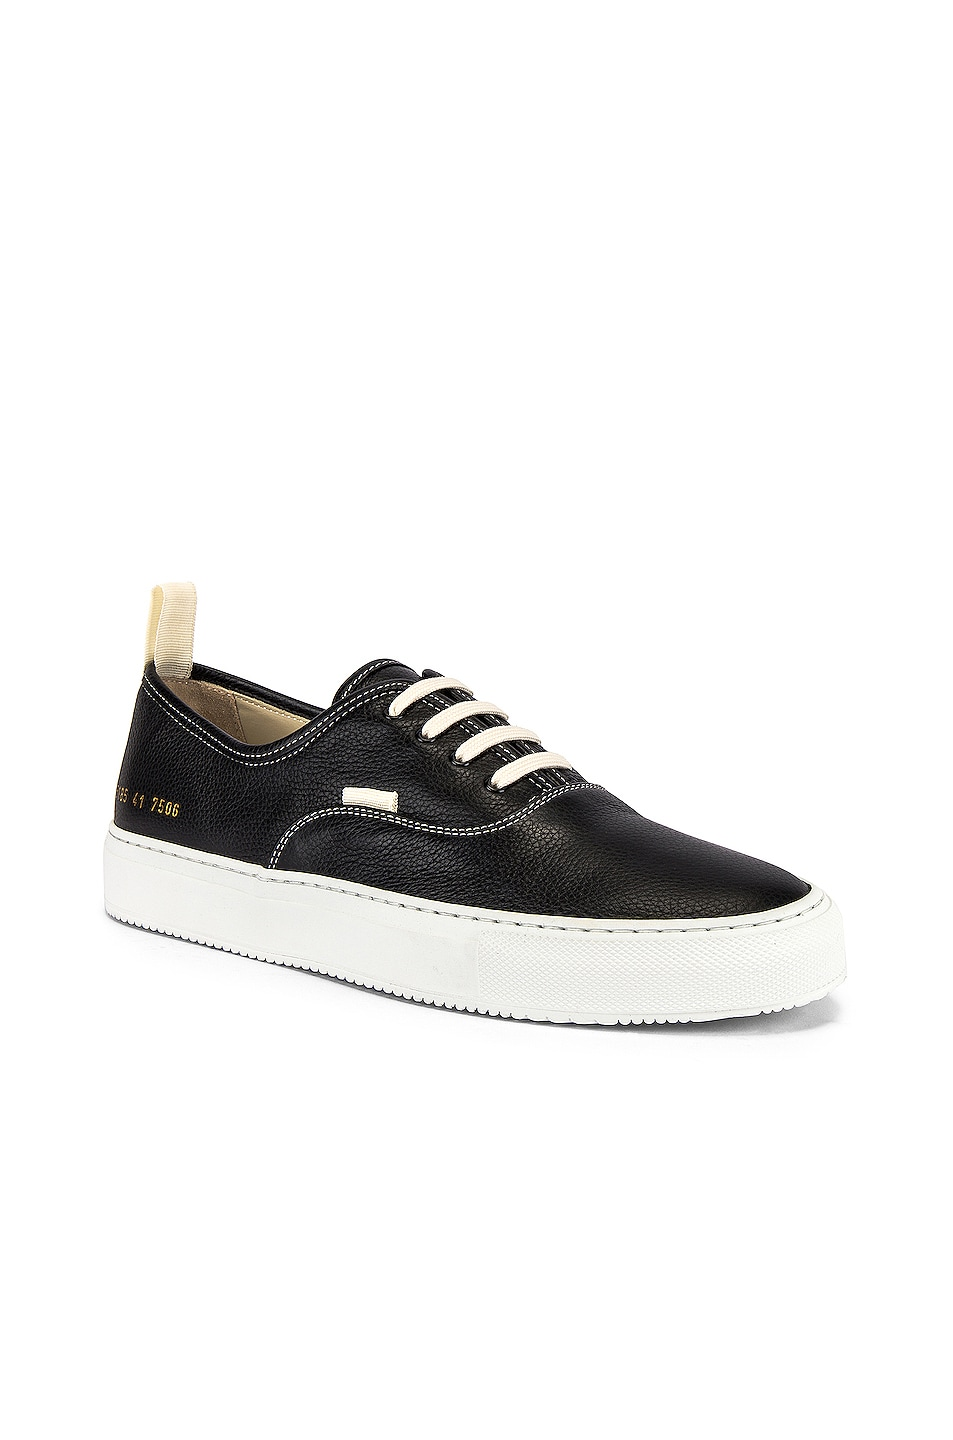 Image 1 of Common Projects Four Hole in Leather Low Sneaker in Black & White